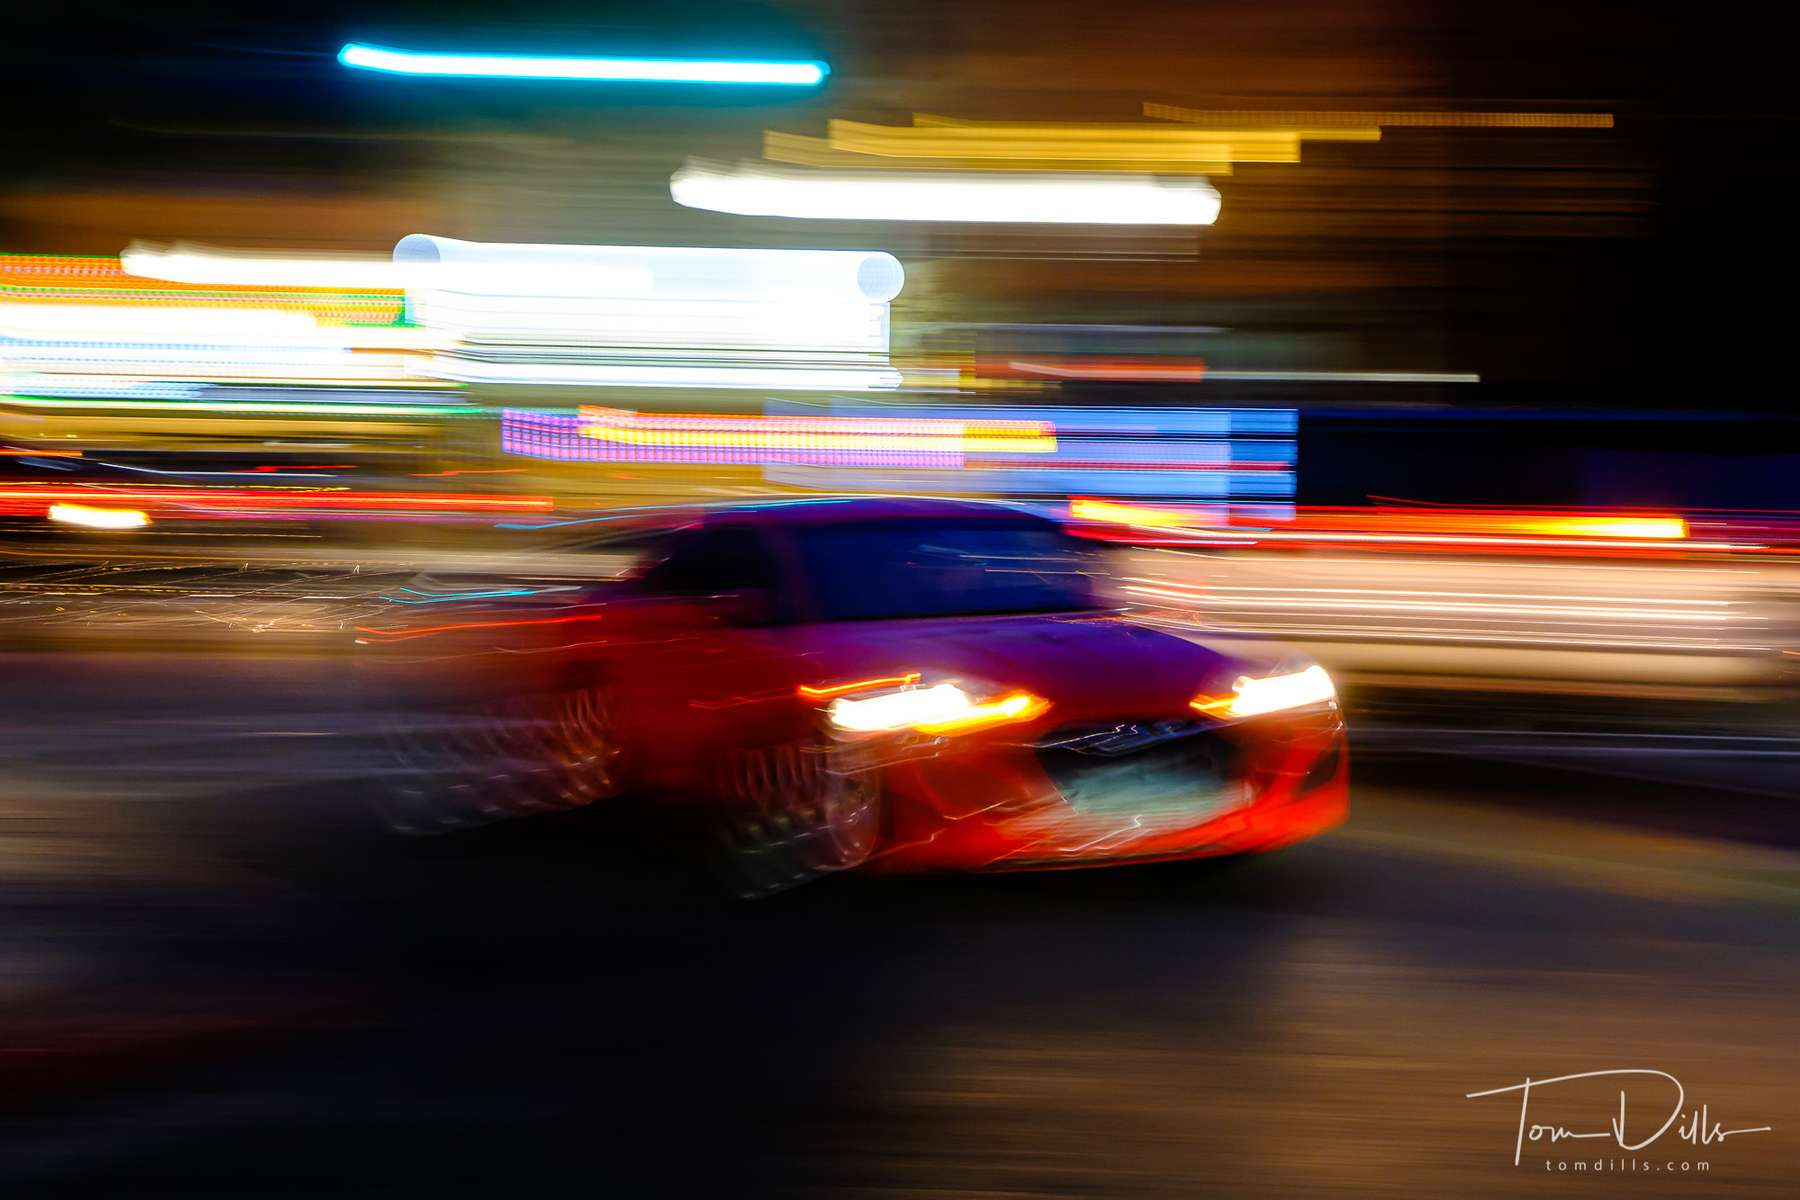 Motion blur of cars while waiting for dinner in downtown Ogden, Utah